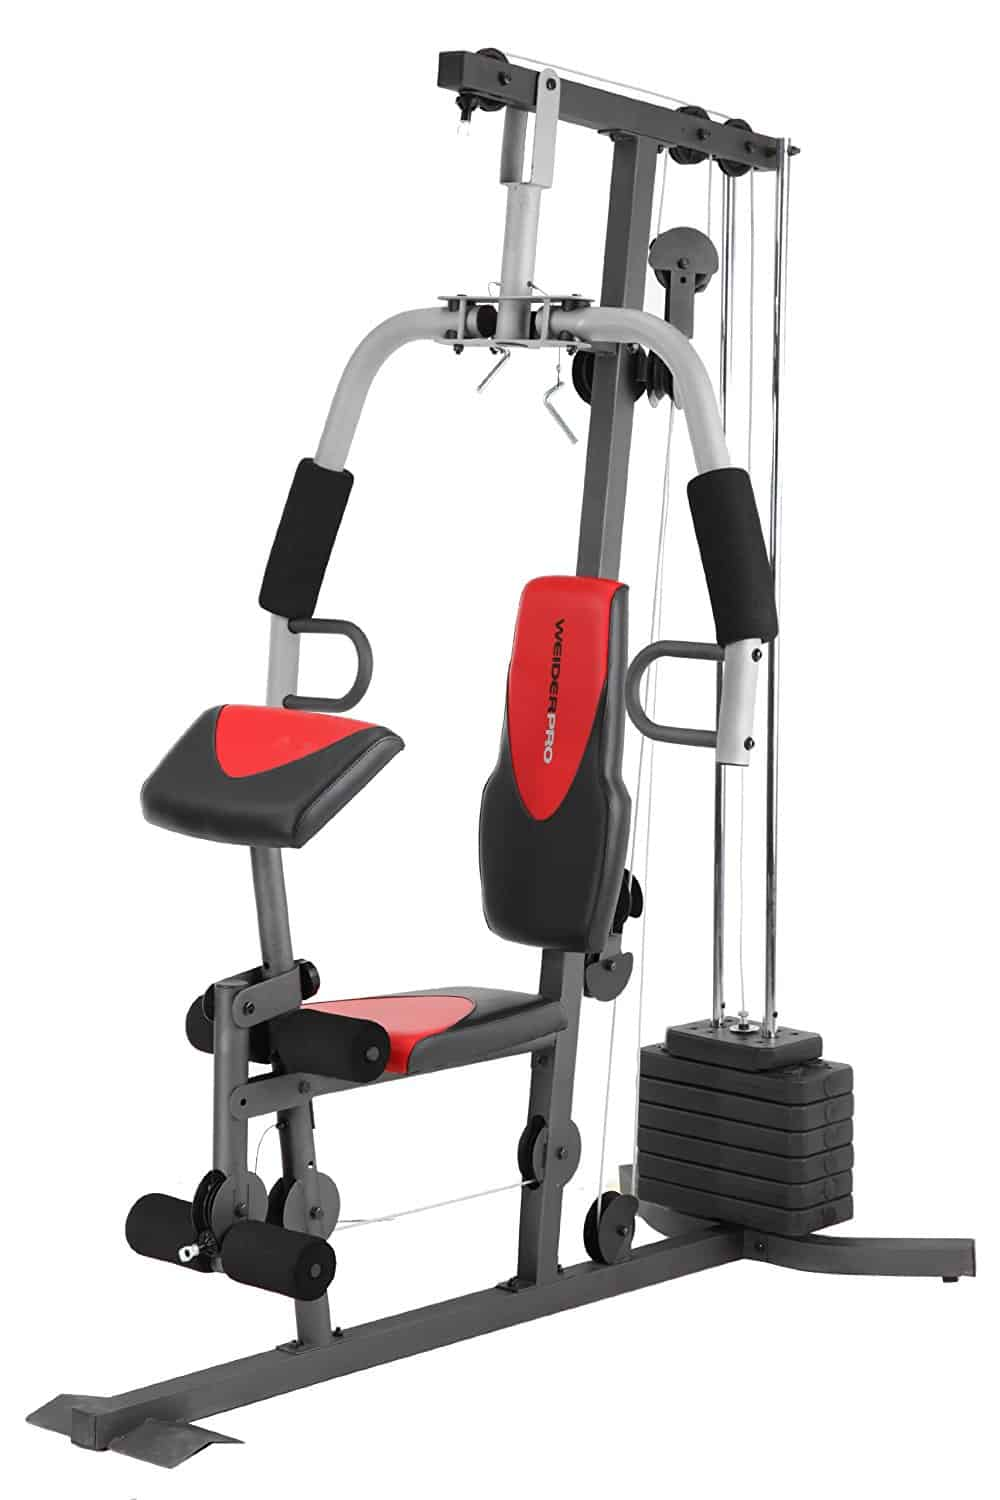 Weider Home Gym Review All In One Workout Peak Health Pro